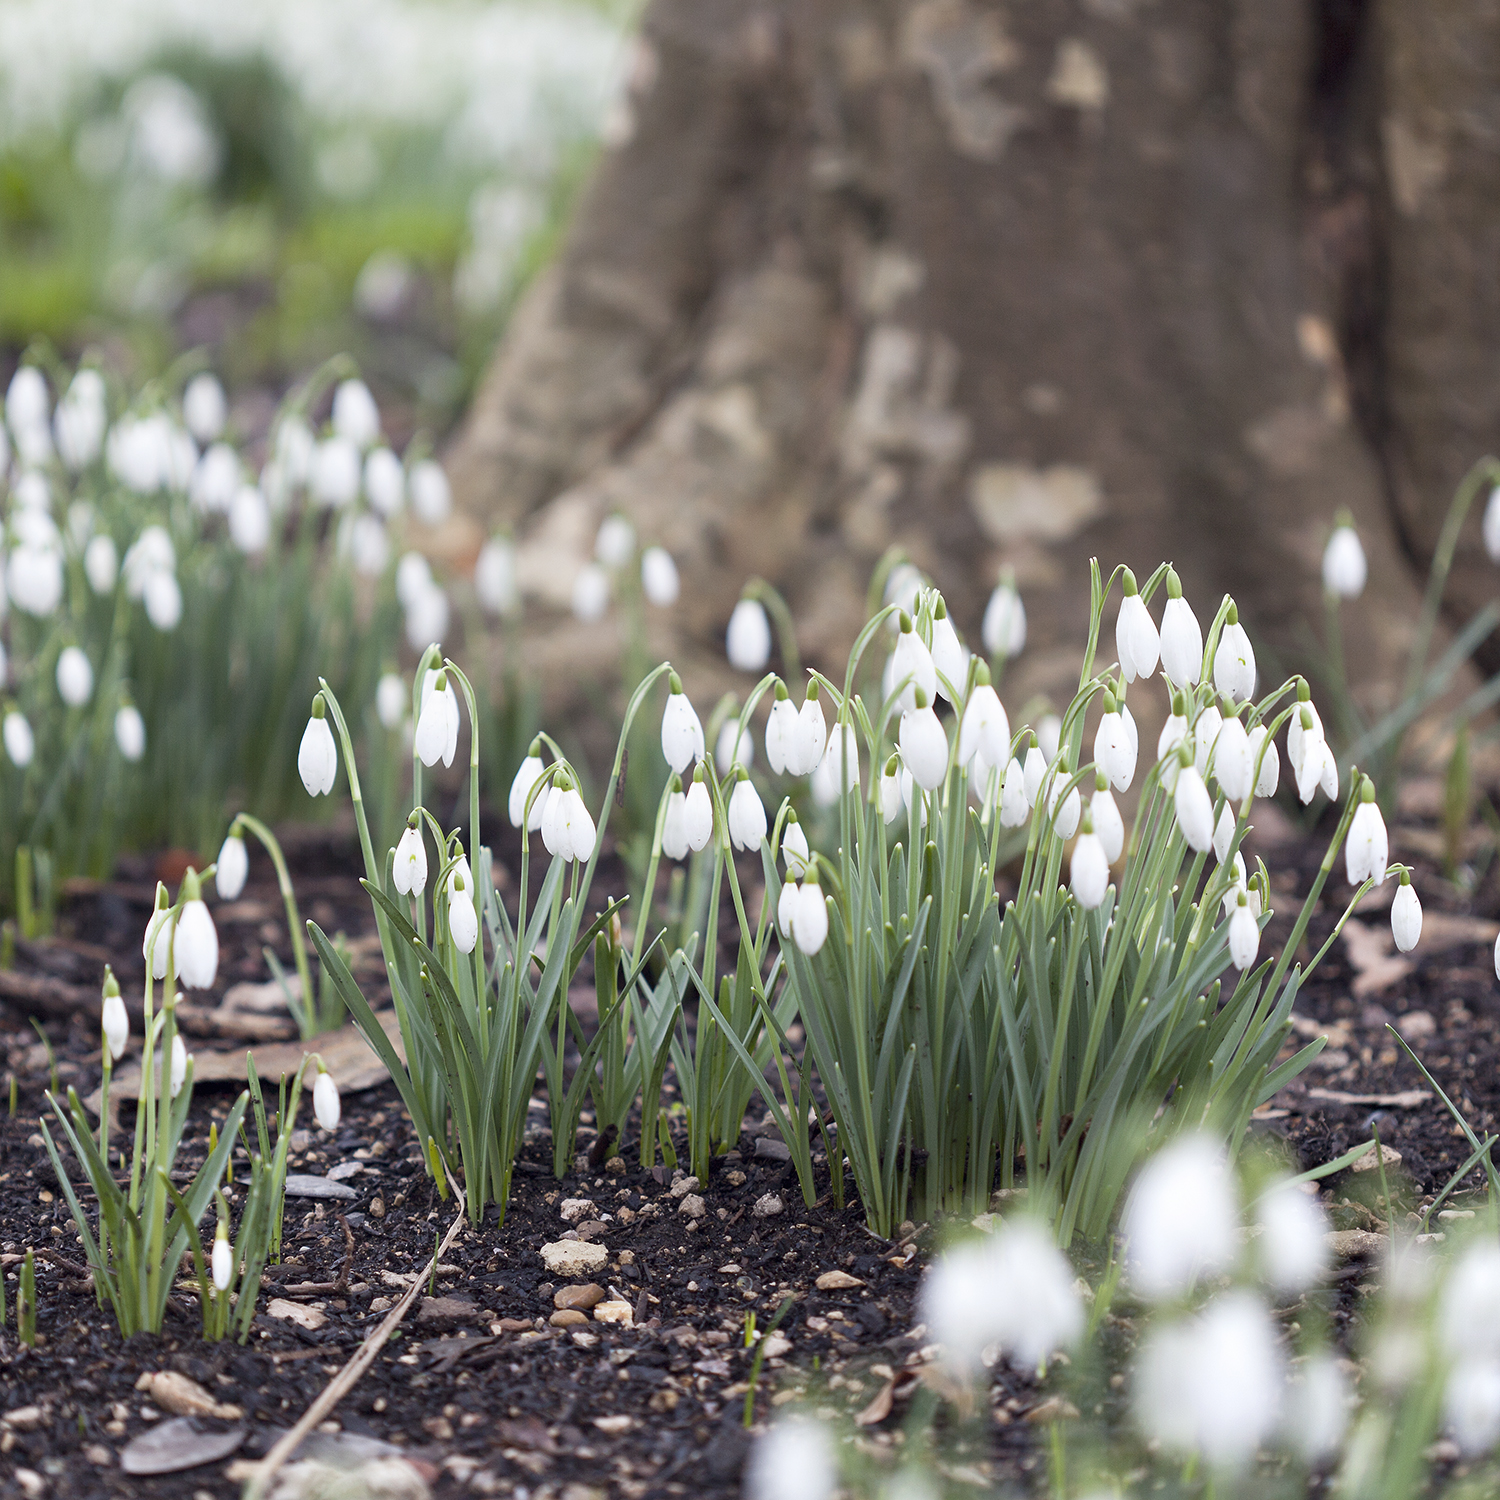 Setting my Intention for the New Year with a Word | Natasha Denness Coaching | natashadenness.co.uk (Photo of snowdrops)